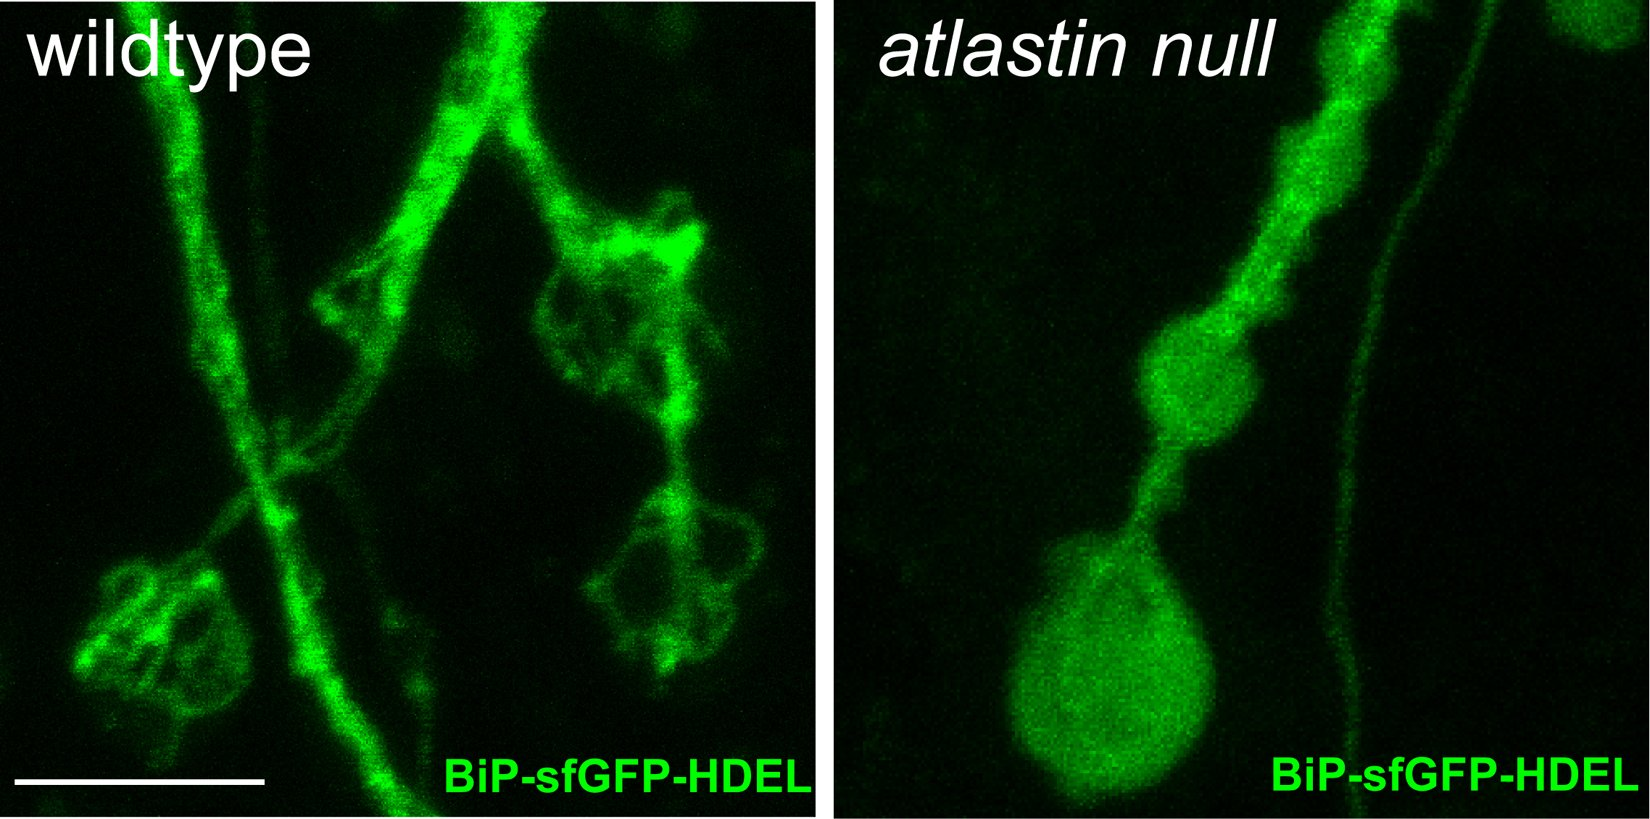 Under normal conditions, the endoplasmic reticulum (ER) in the neuron's synapse forms a basket-like shape (left). In cells that lacked the protein atlastin, an undifferentiated mass of ER material (right) forms in place of the basket-like structure. (Image courtesy of J. Faust/Rice University)